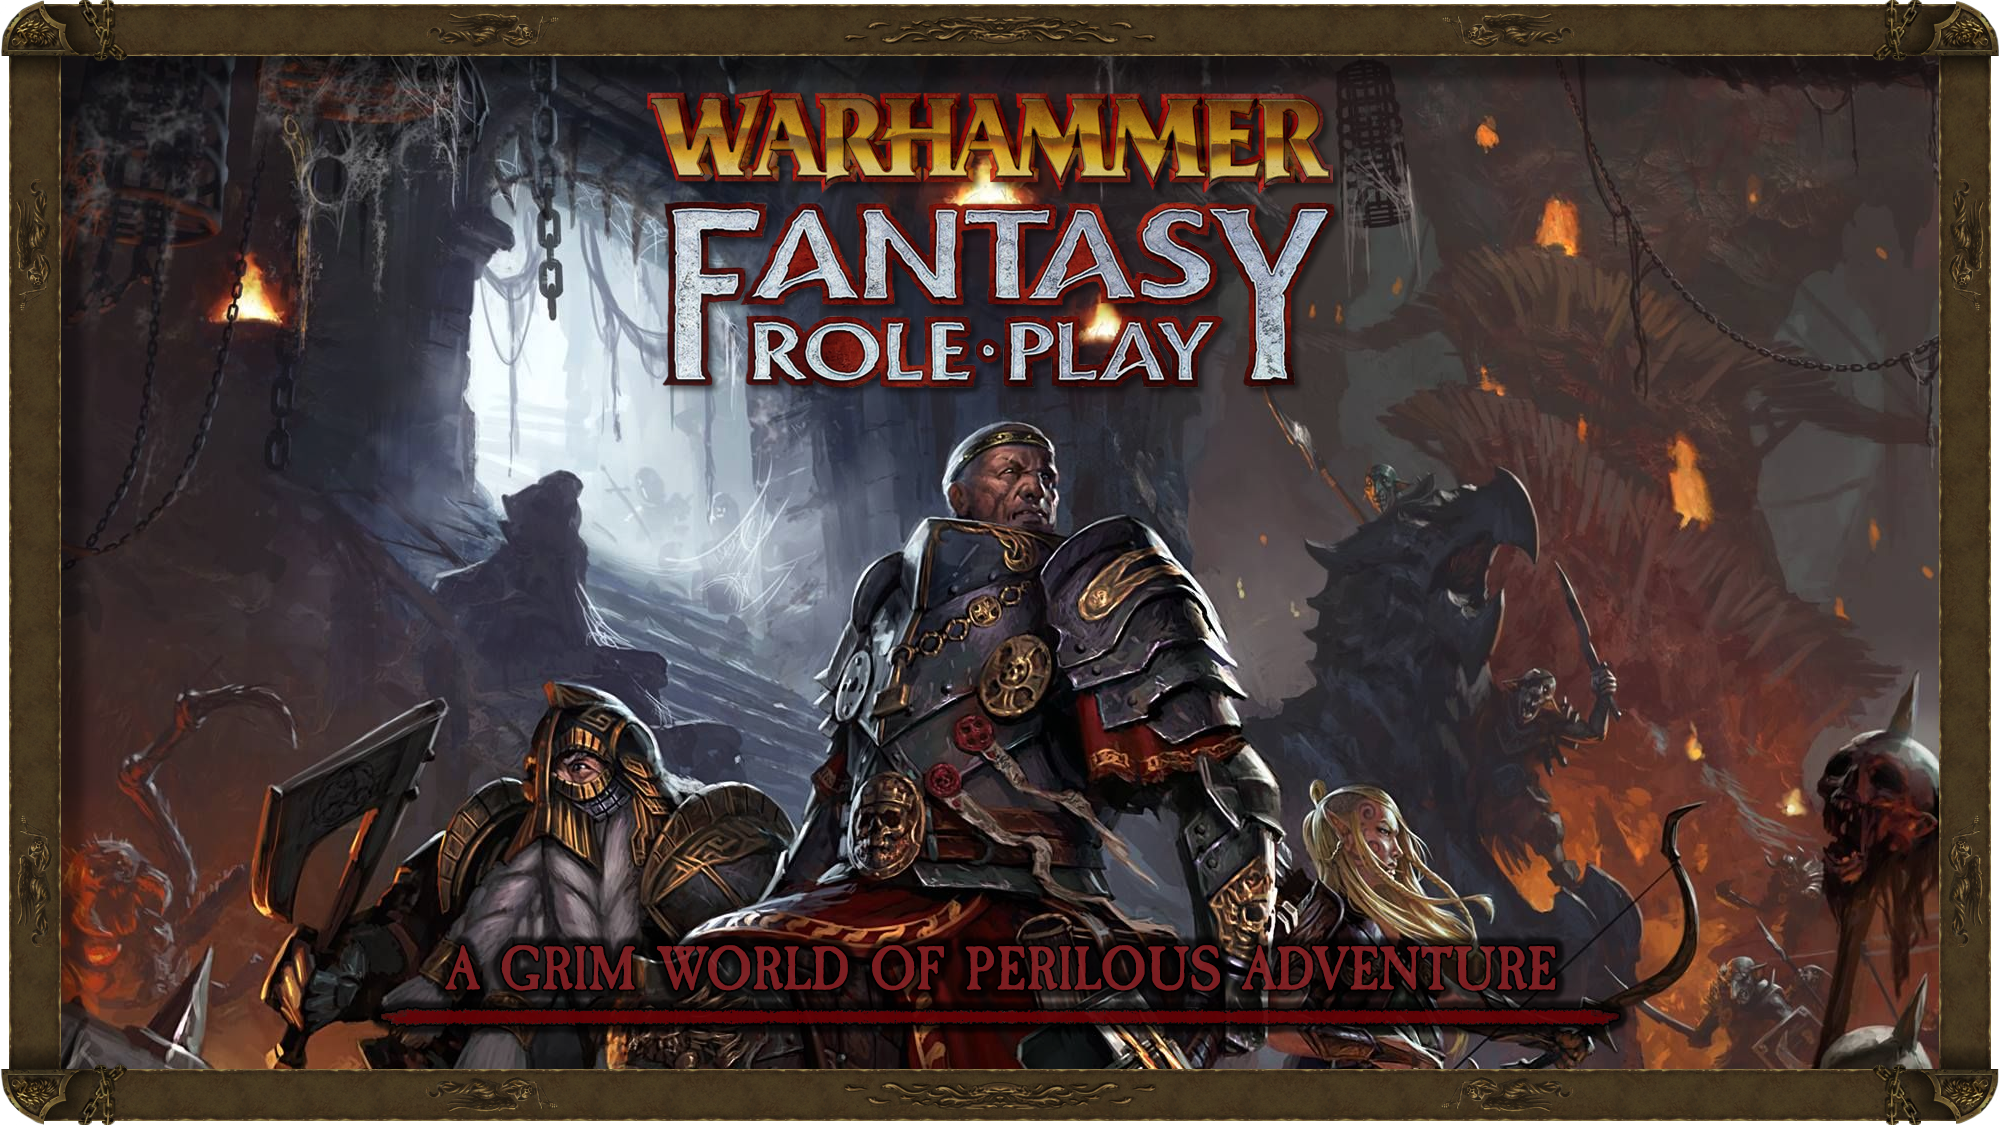 Github Catothe1stelder Wfrp 4th Edition Foundryvtt Welcome All And Especially Newcomers This Is The Premiere System For Running Grim And Perilious Games Of Warhammer Fantasy Role Play In The Foundry Vtt Environment Additional Content Included